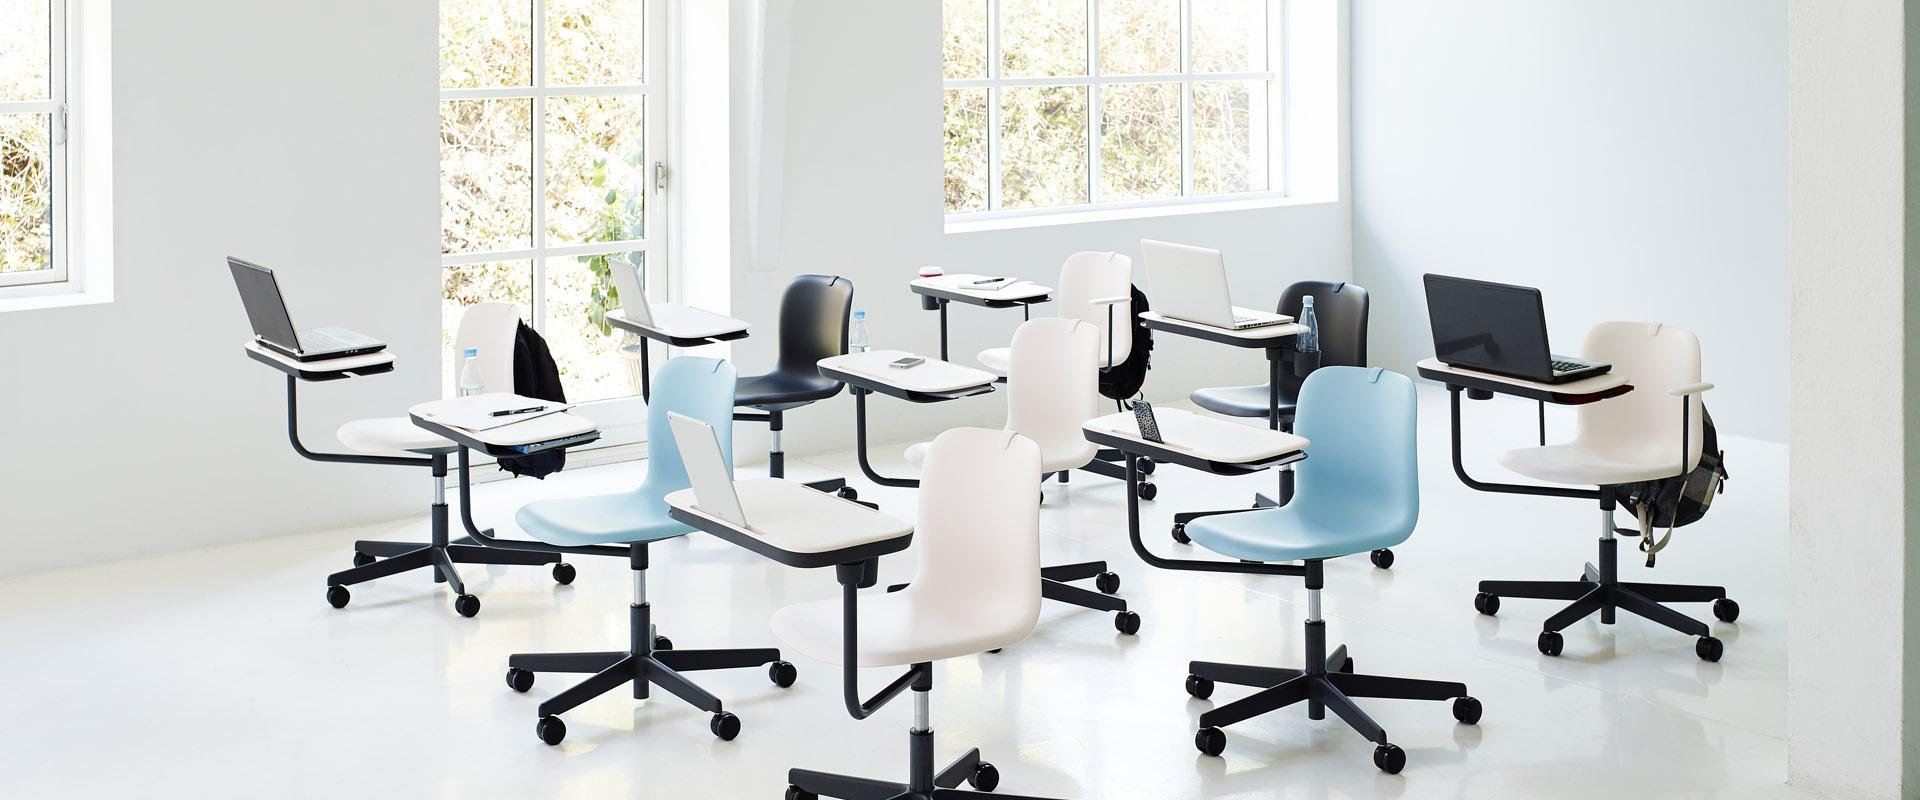 sixe_learn_active_learning_chair_pearsonlloyd.jpg